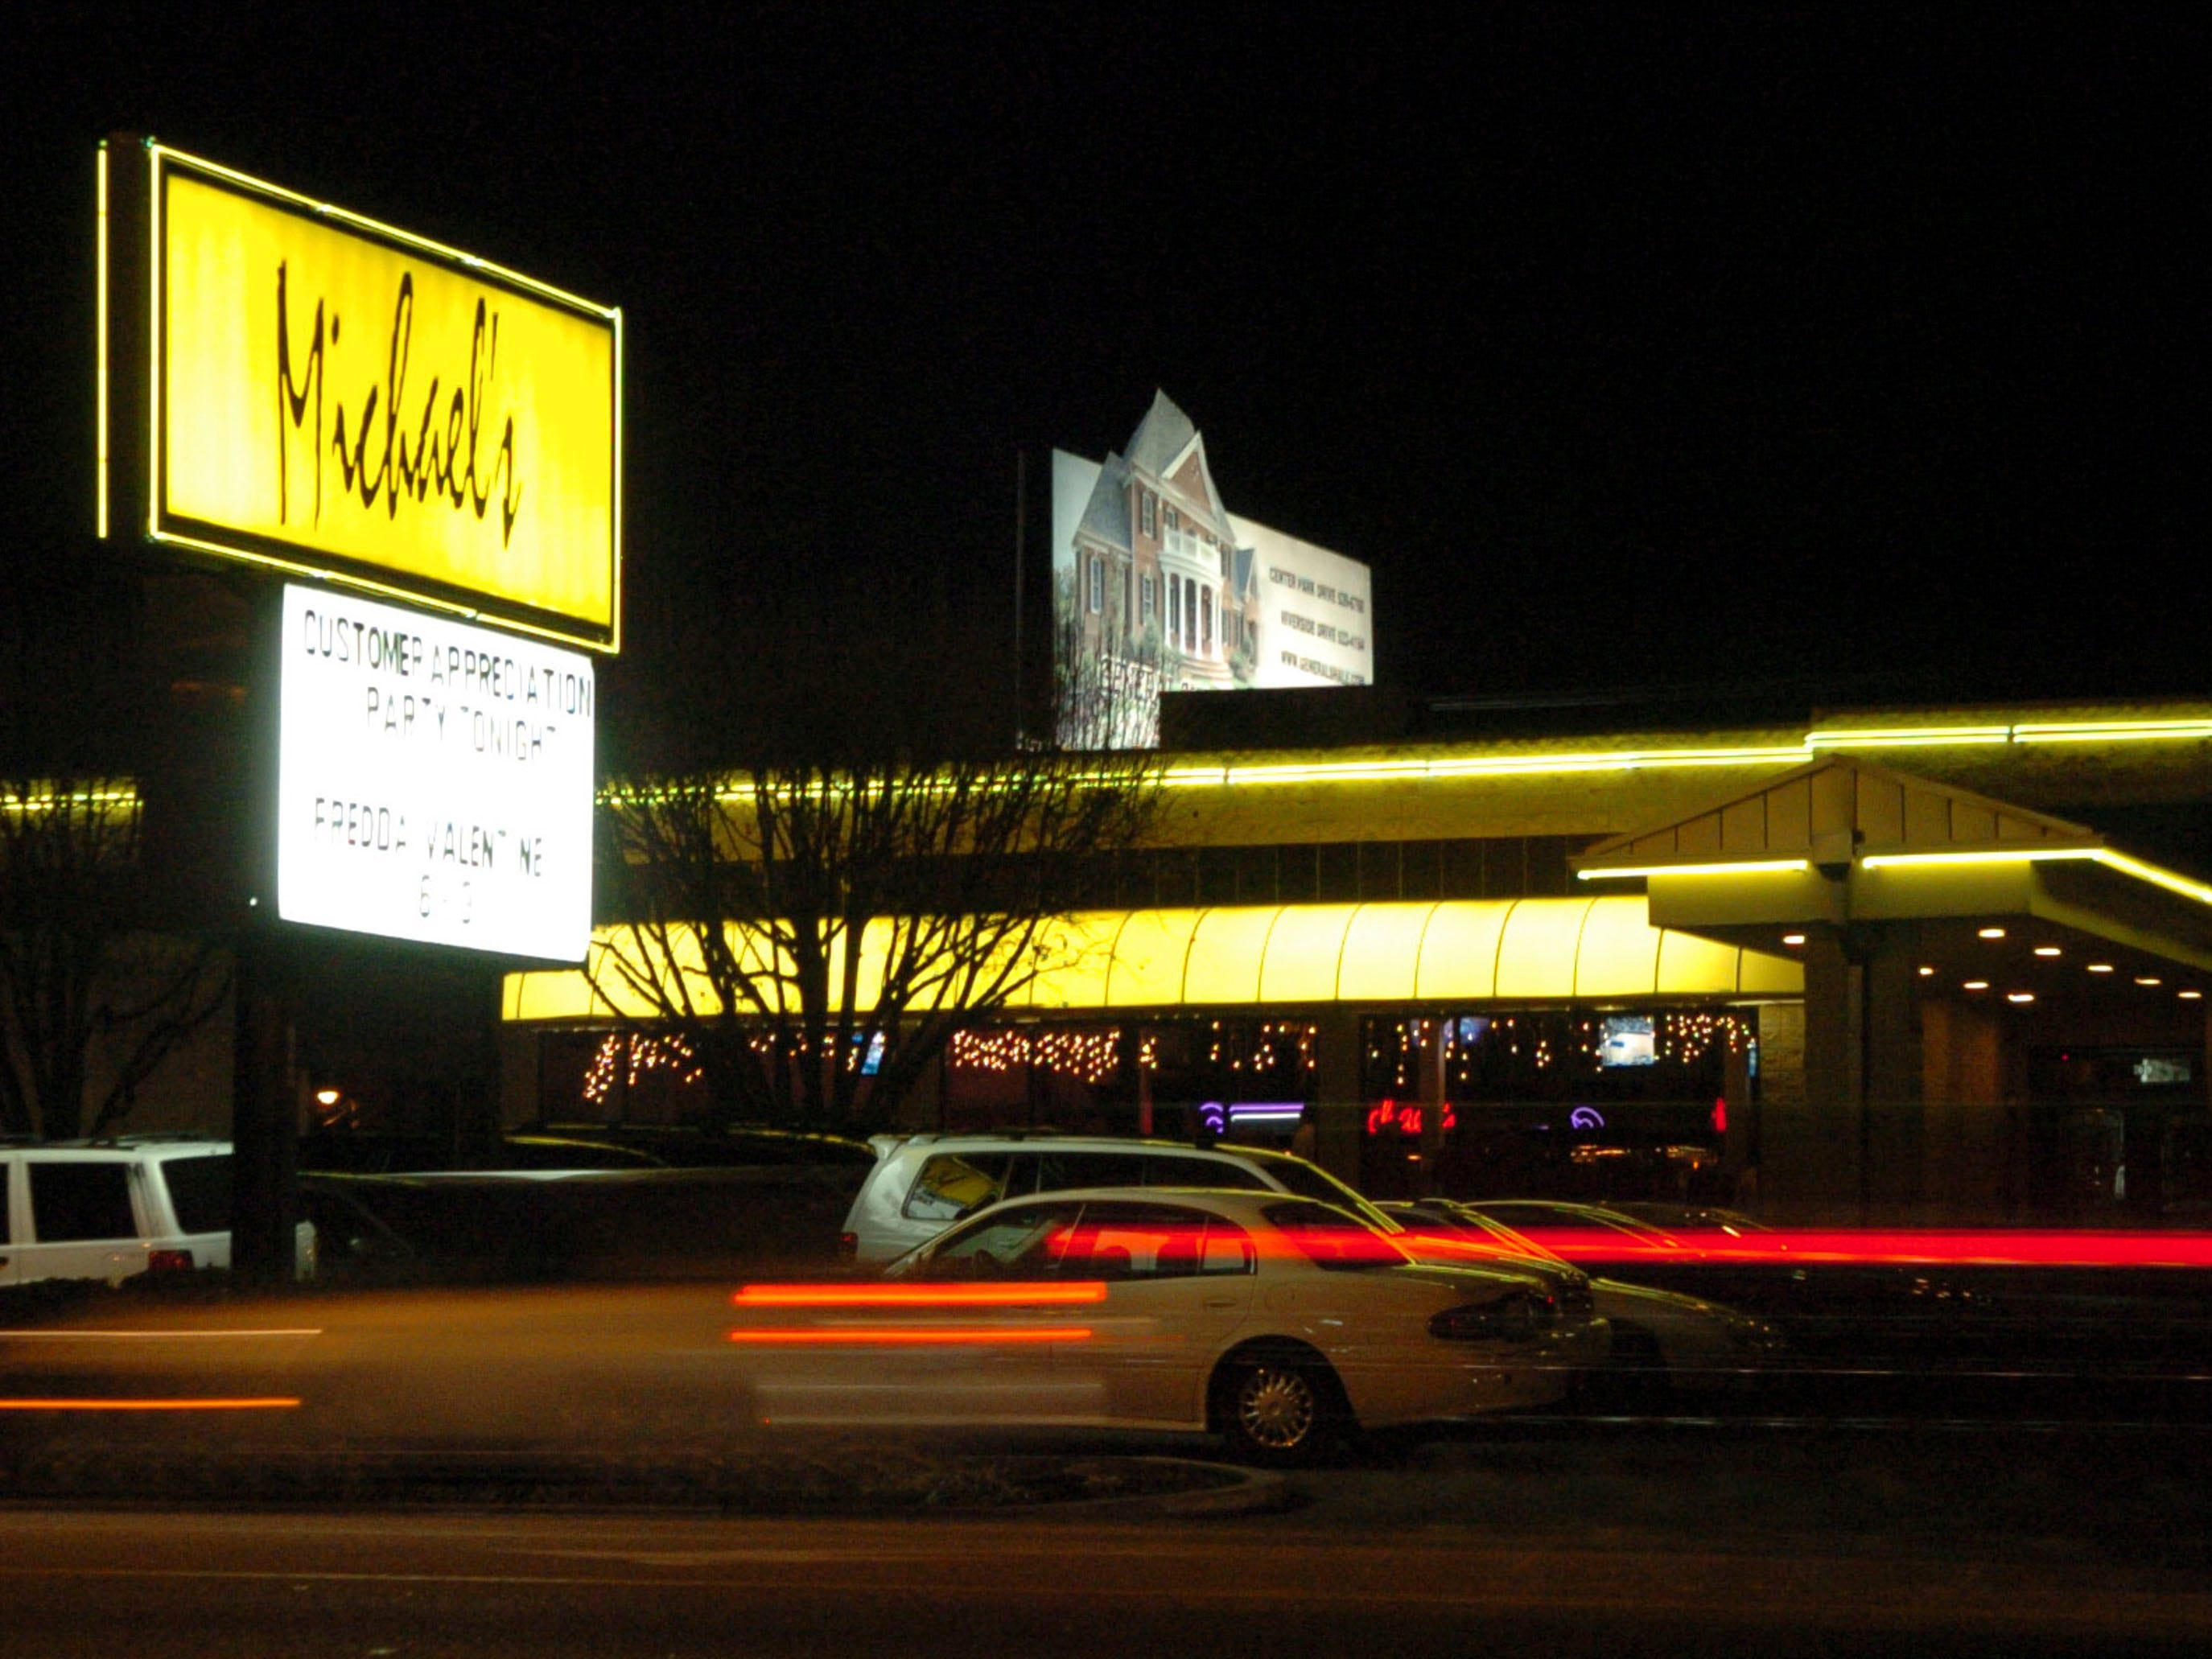 Michael's restaurant and bar on Kingston Pike in west Knoxville in 2005.